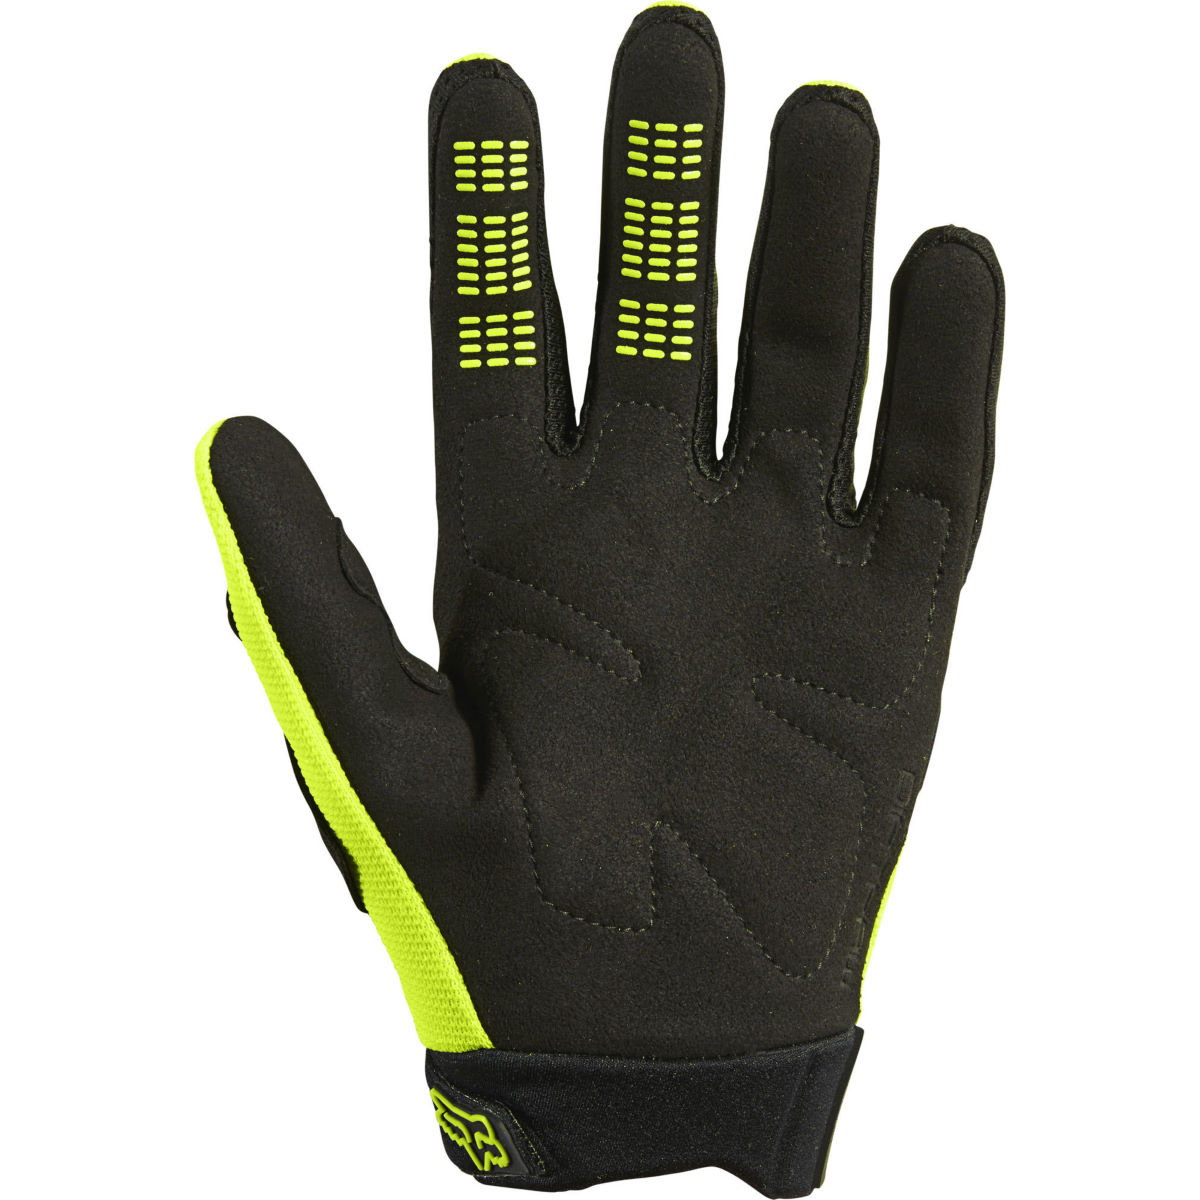 Fox Racing Youth Dirtpaw Race Cycling Gloves - Y-xs Fluo Yellow